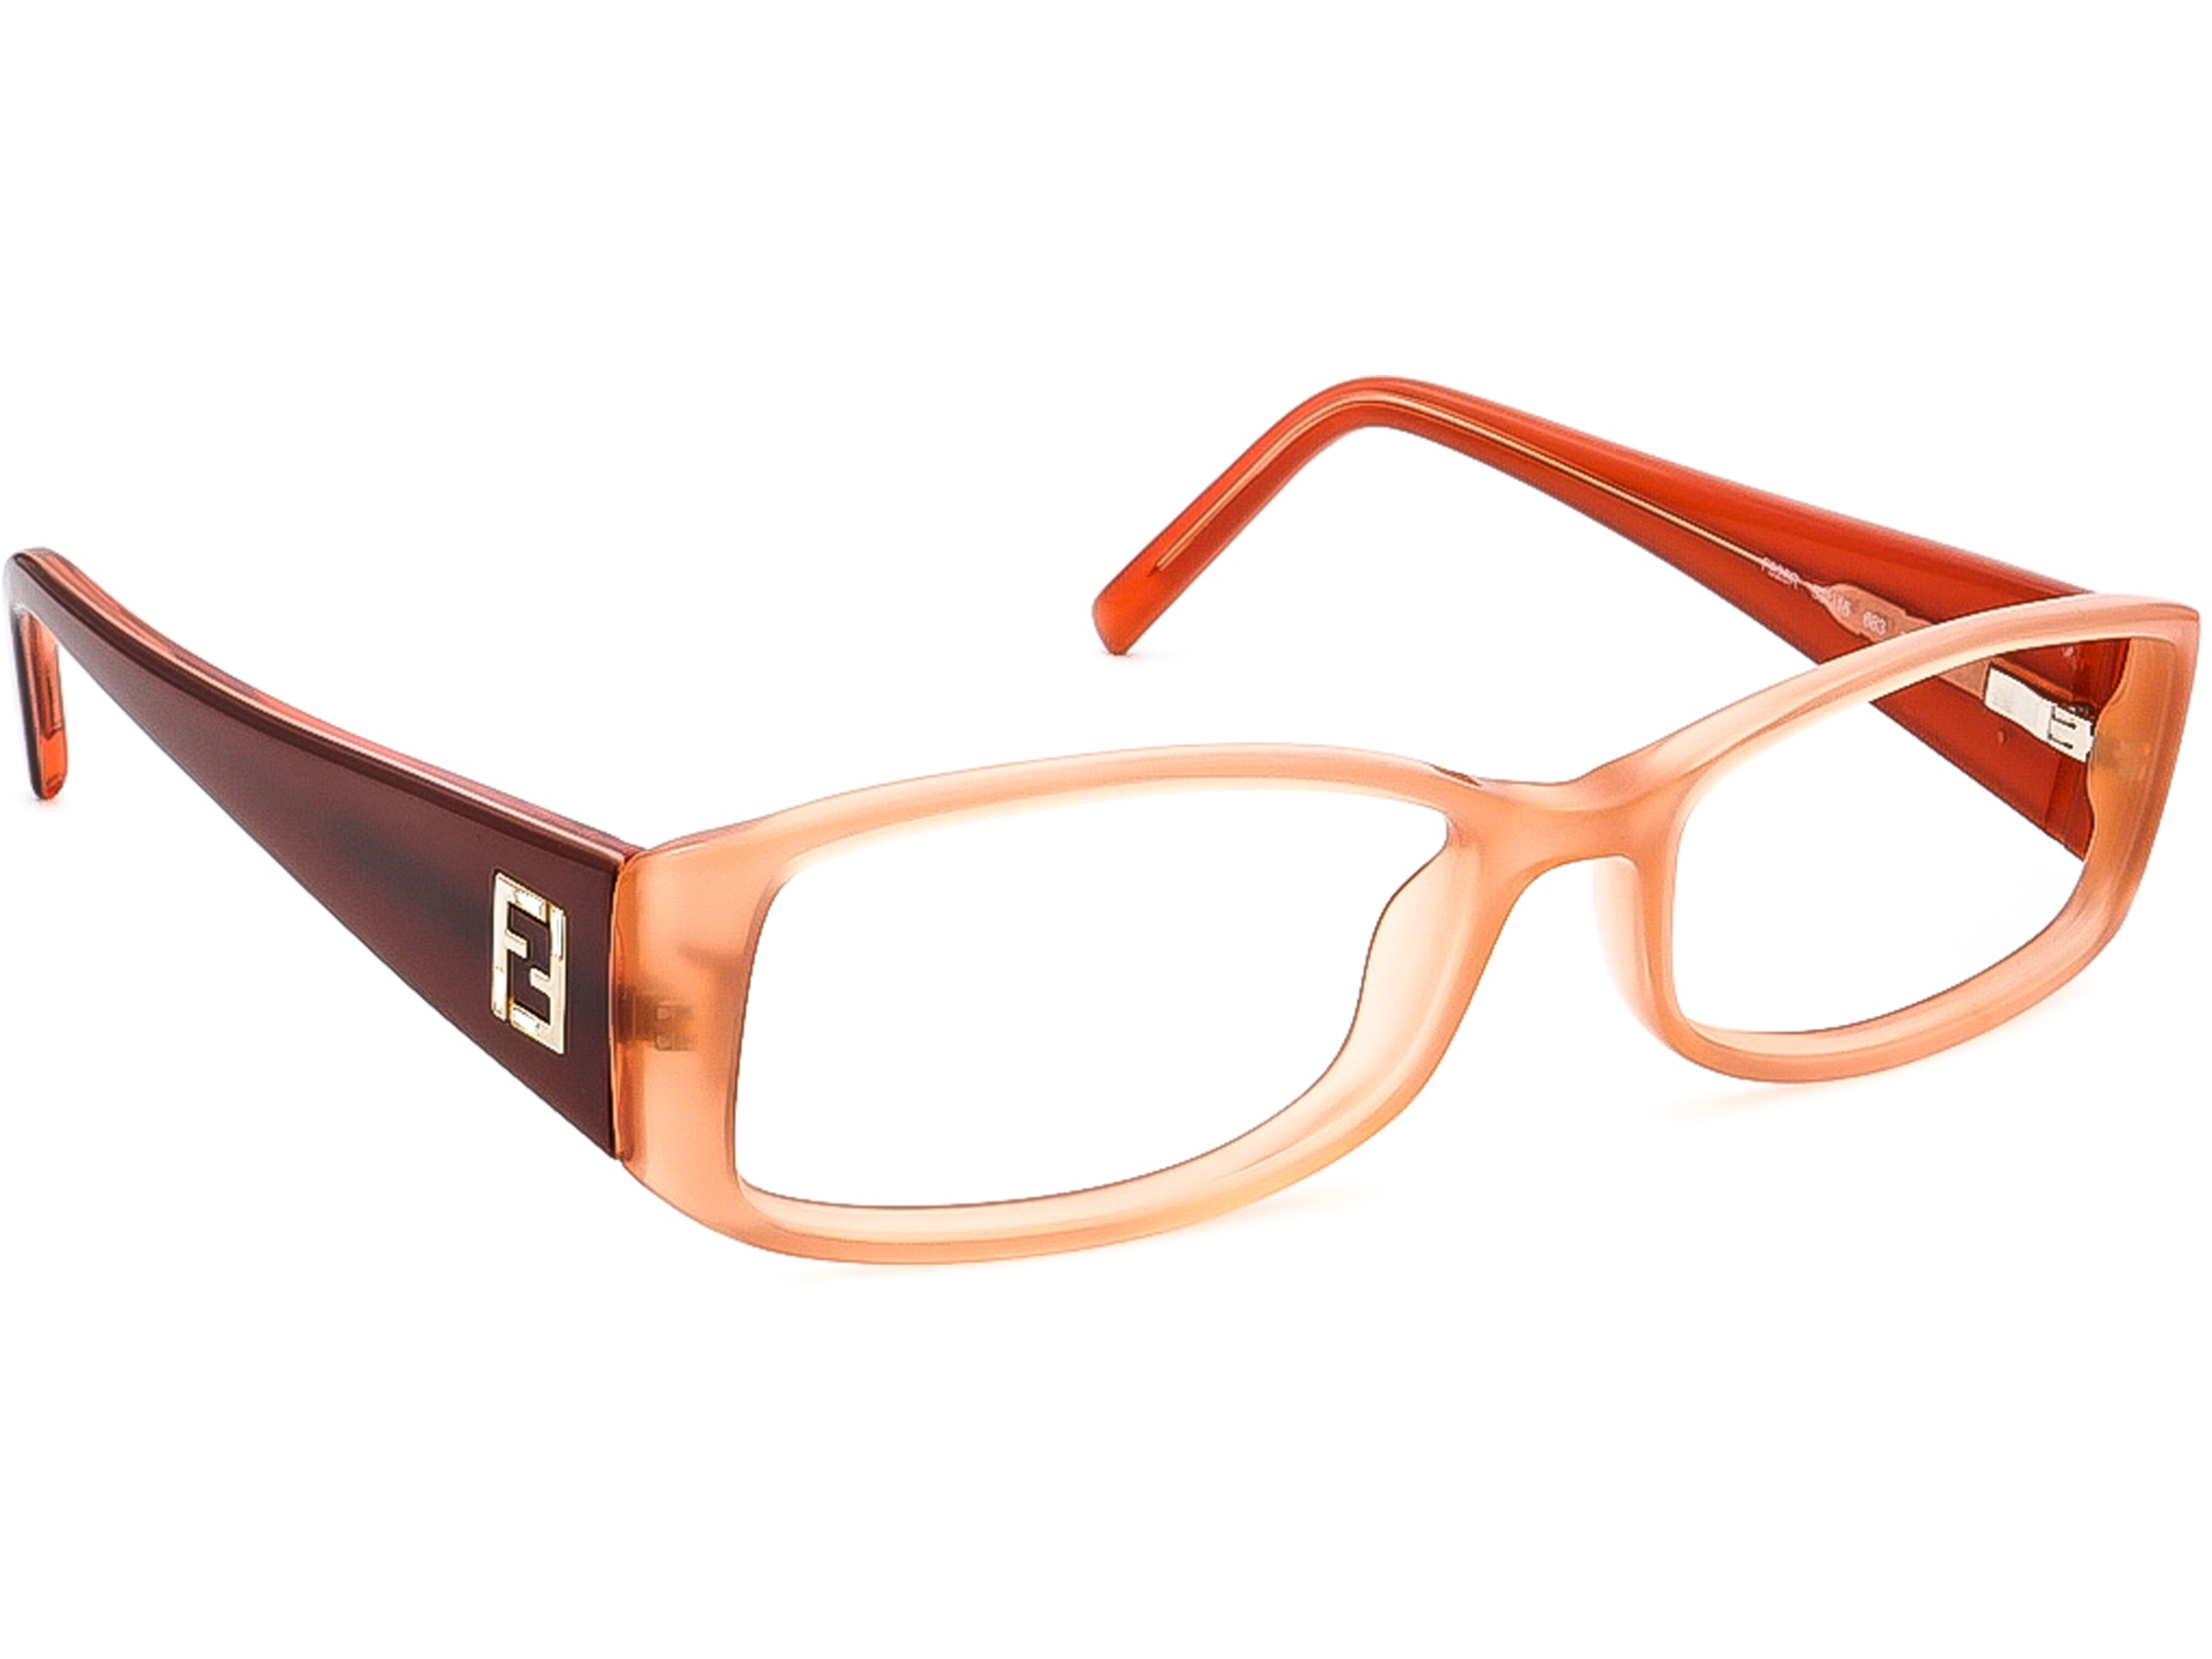 Fendi F926 683 Eyeglasses